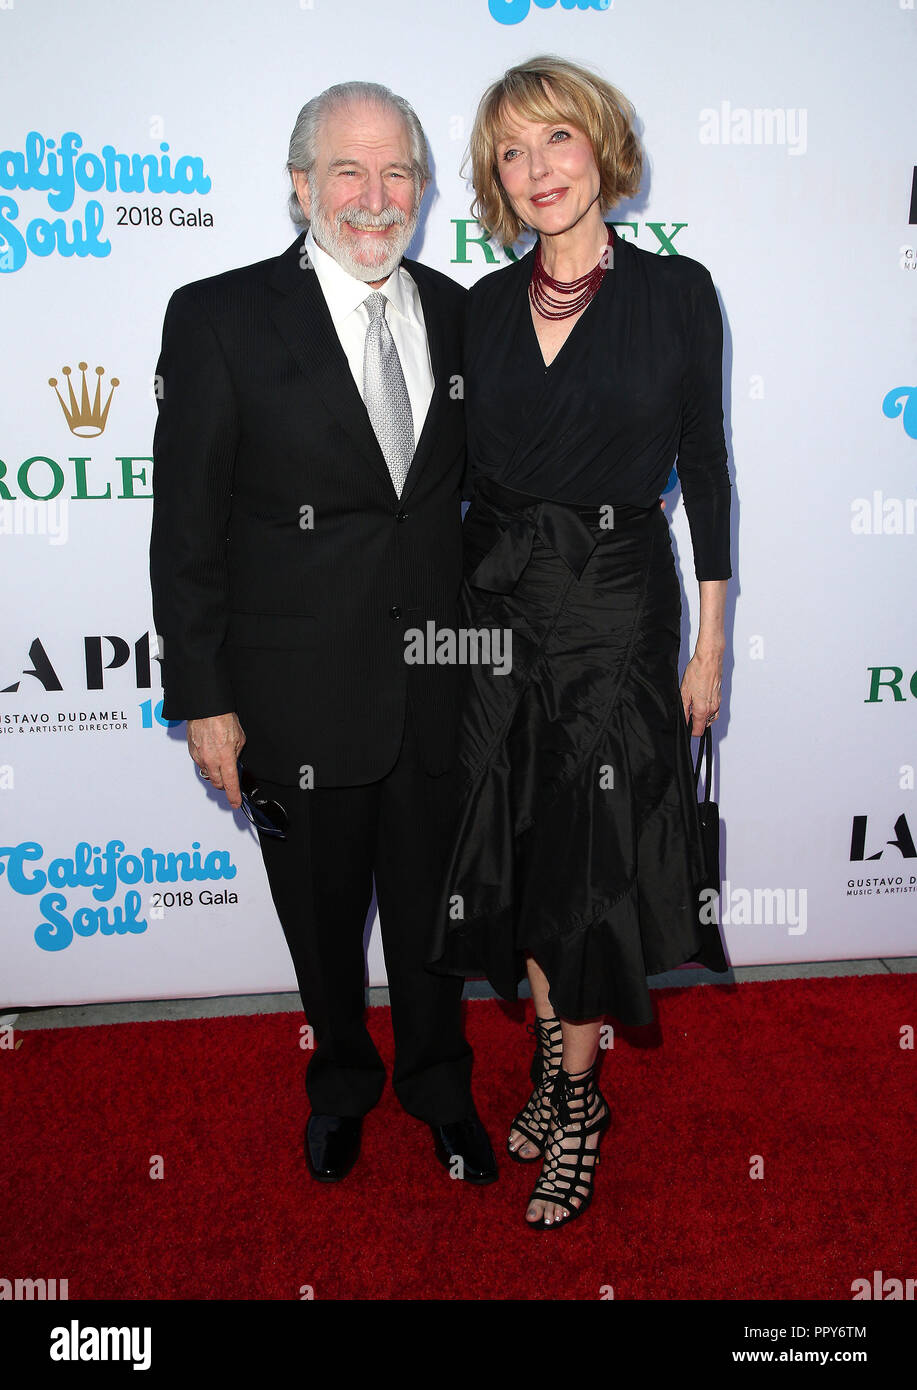 September 27, 2018 - Los Angeles, California, U.S. - 27 September 2018 - Los Angles, California - Steve Jaffe, Susan Blakely.  100th LA Philharmonic Opening Night Gala held at The Walt Disney Concert Hall. Photo Credit: Faye Sadou/AdMedia (Credit Image: © Faye Sadou/AdMedia via ZUMA Wire) Stock Photo